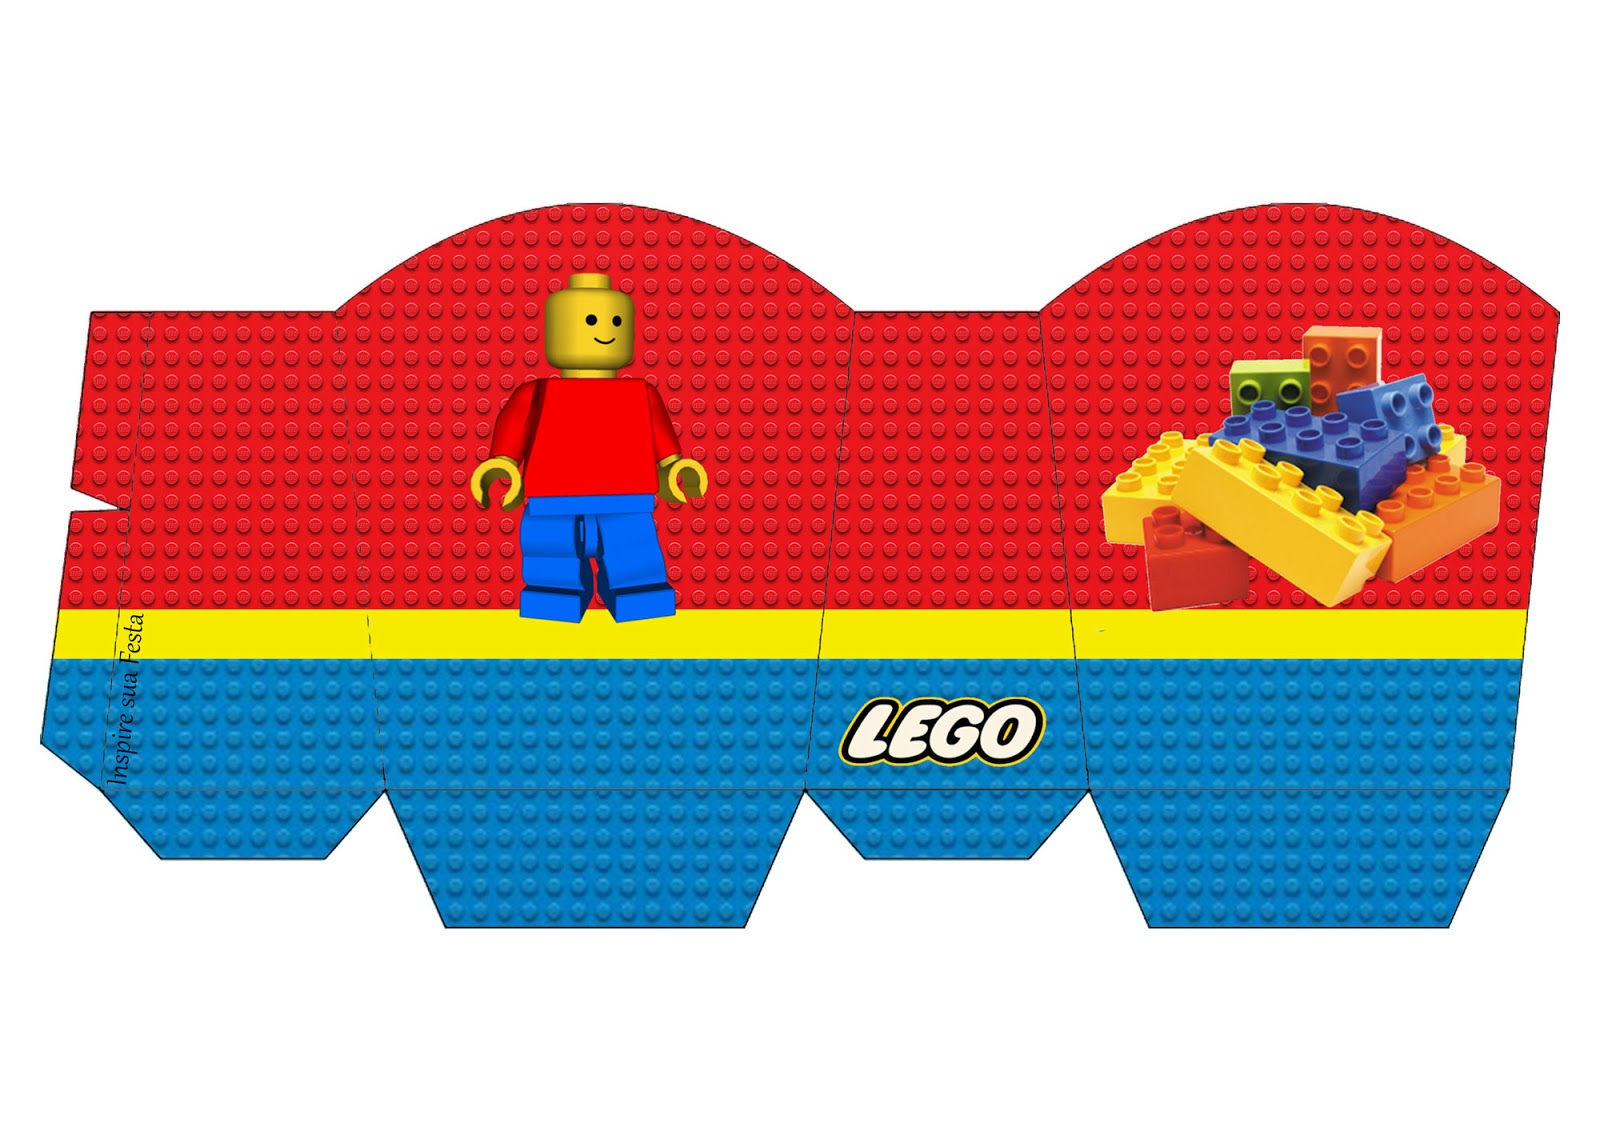 Lego Party: Free Printables Boxes and Free Party Printables. - Oh My ...